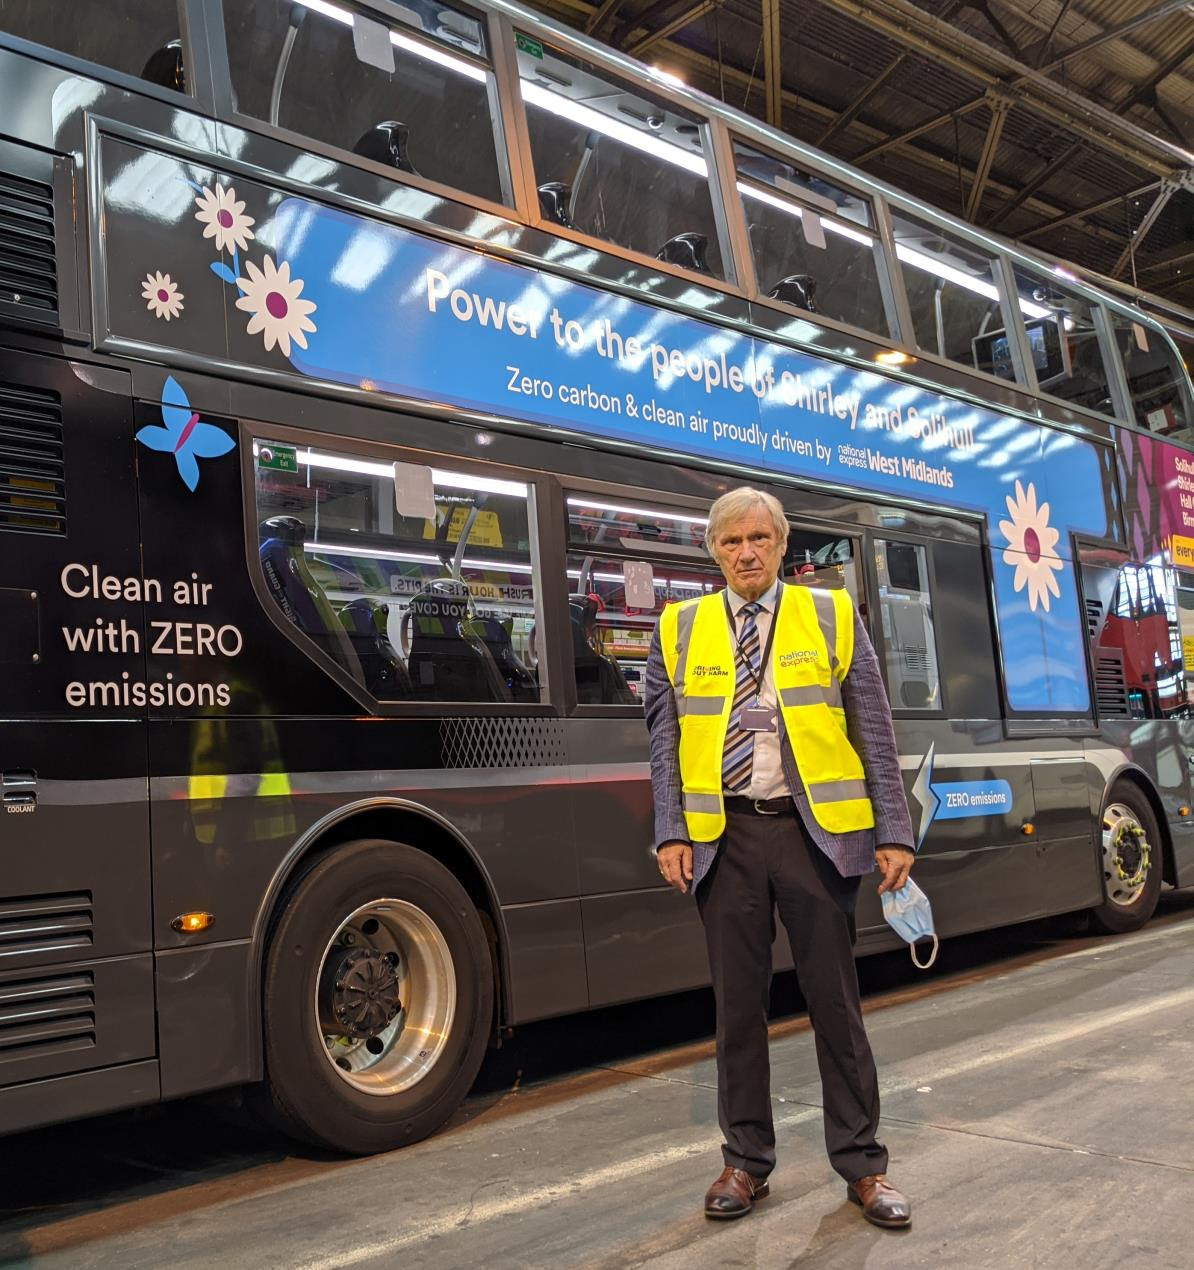 Image for West Midlands Mayor praises bid to make bus fleet all electric